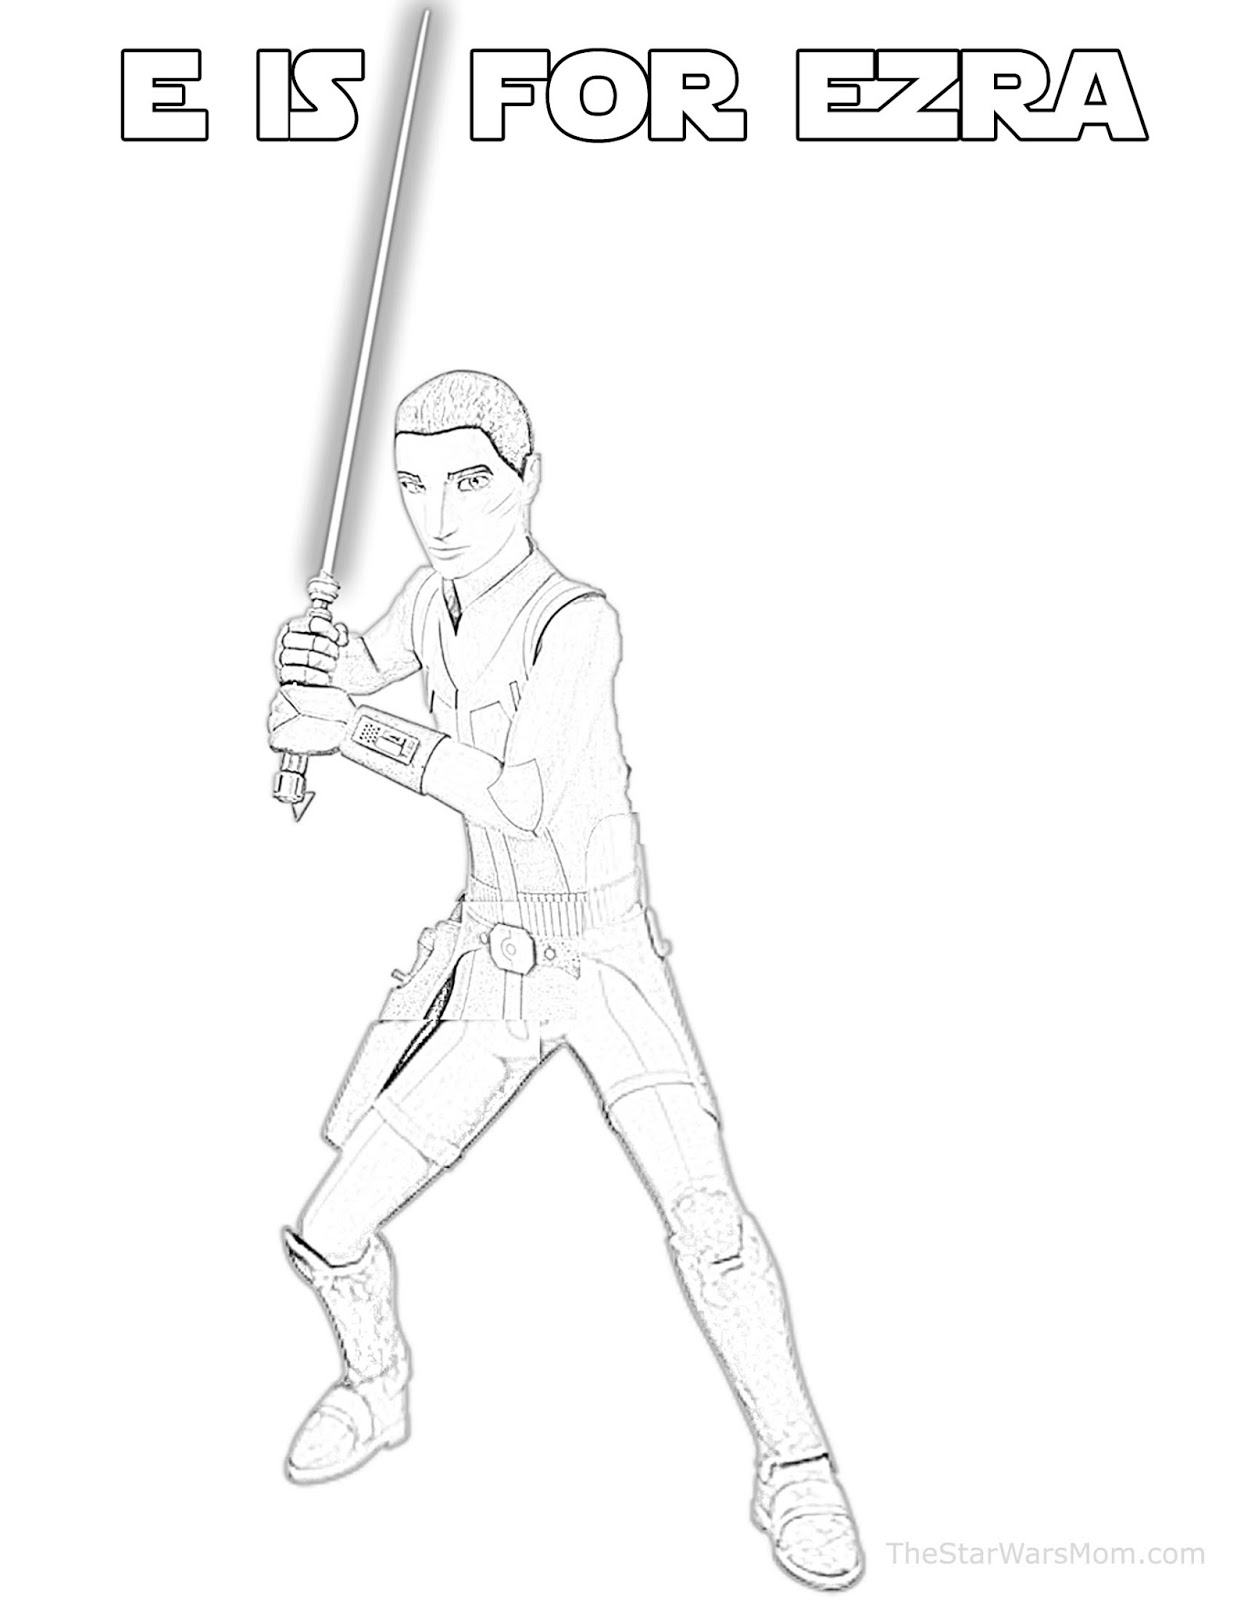 E is for Ezra Bridger - Star Wars Alphabet Coloring Page - The